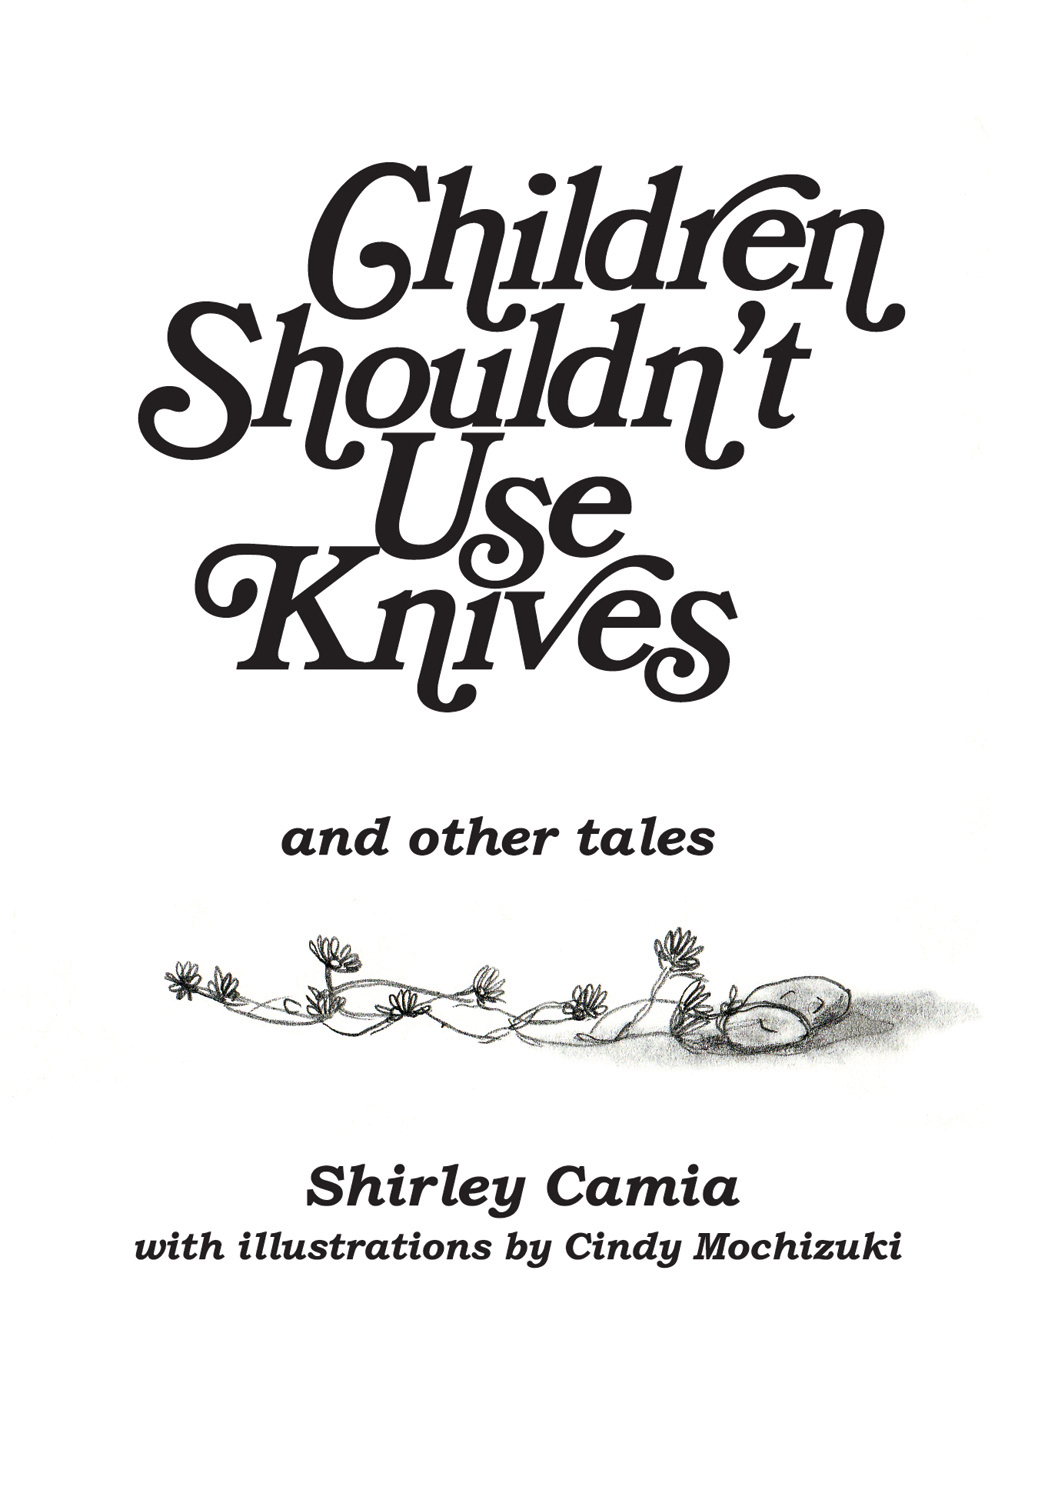 Children Shouldn't Use Knives and other tales